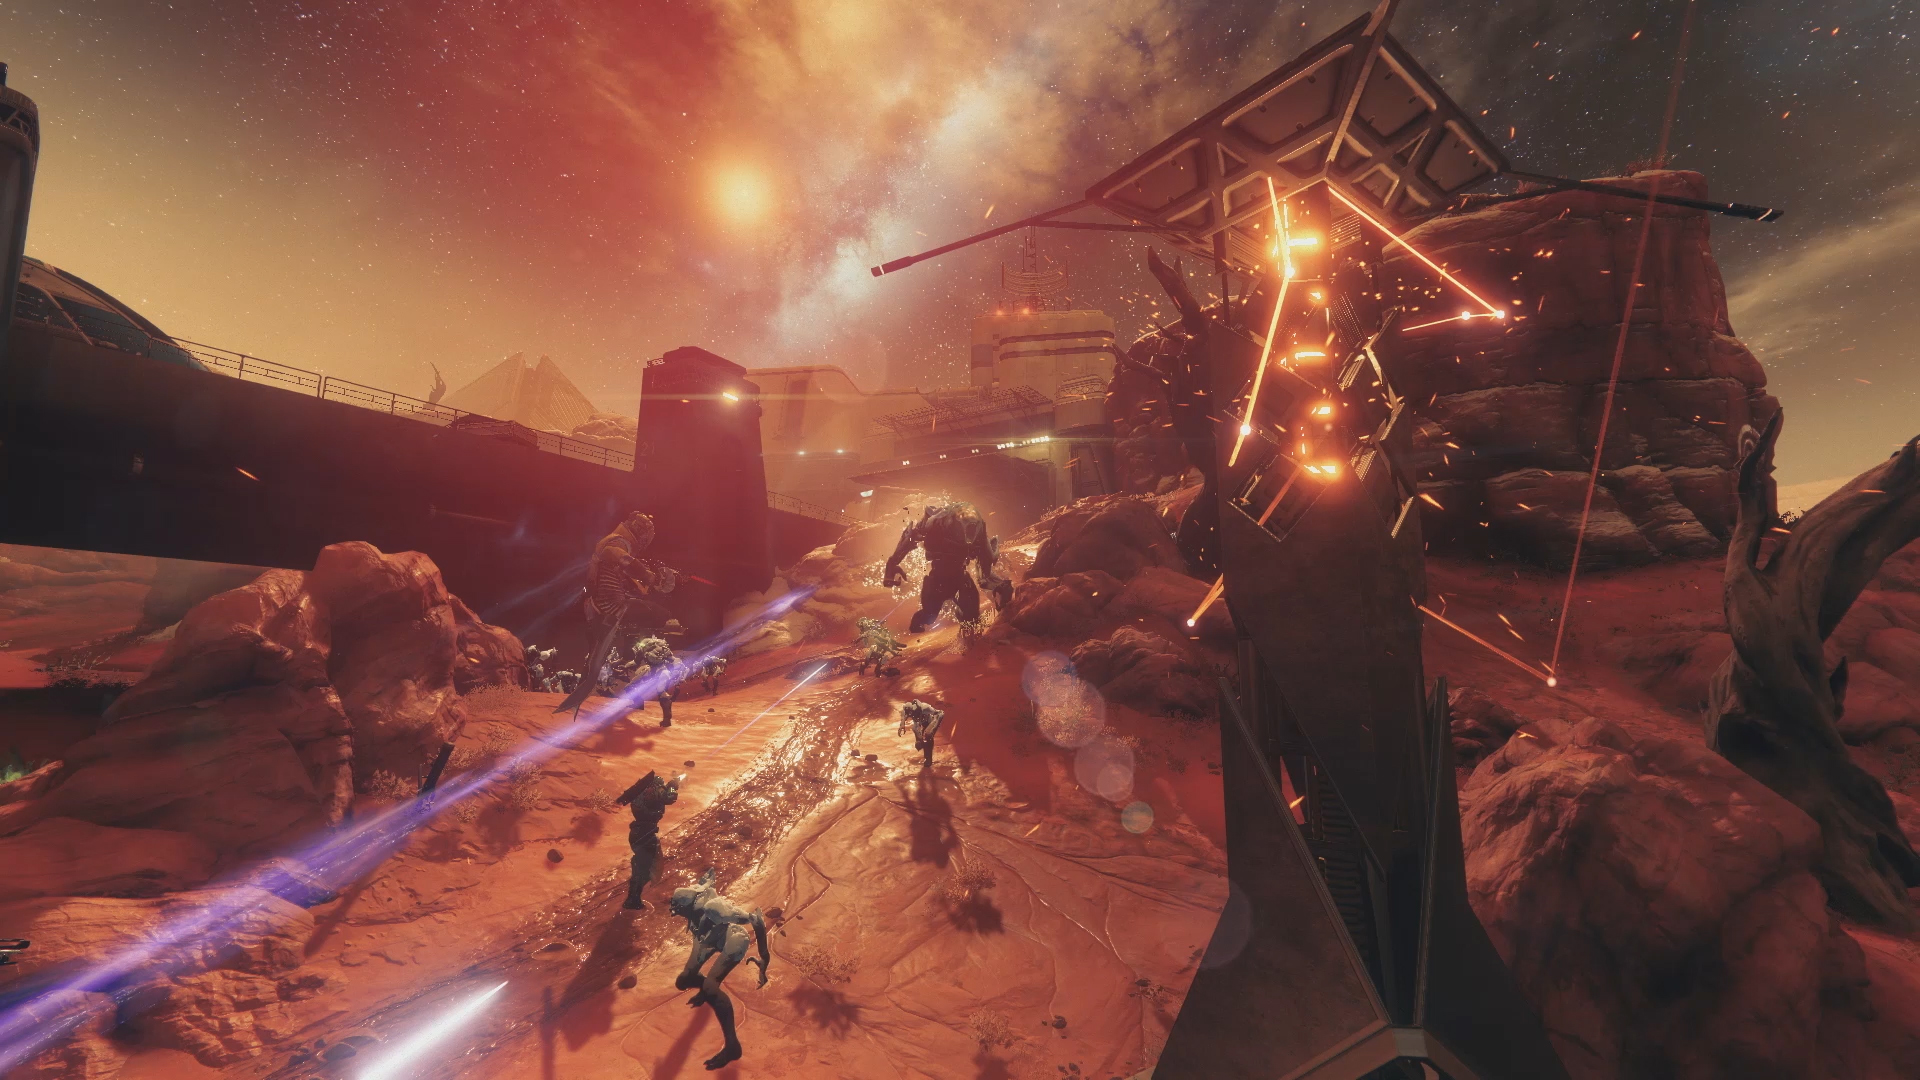 Photo of Destiny 2's updated roadmap looks quite tasty, but will it deliver?